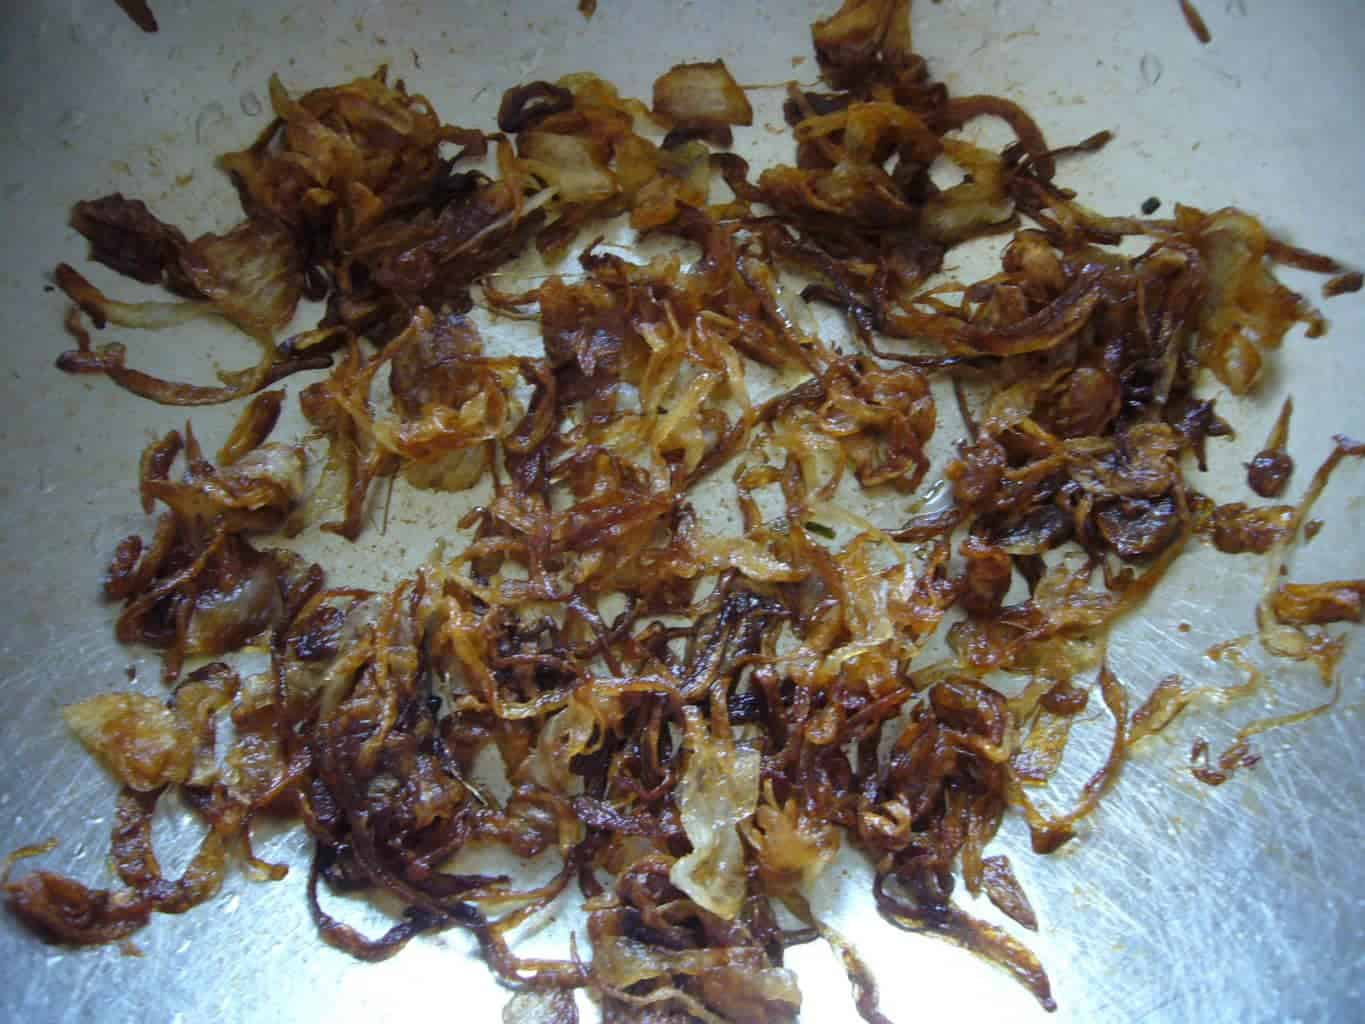 Onions nicely caramelized for making Persian soup.